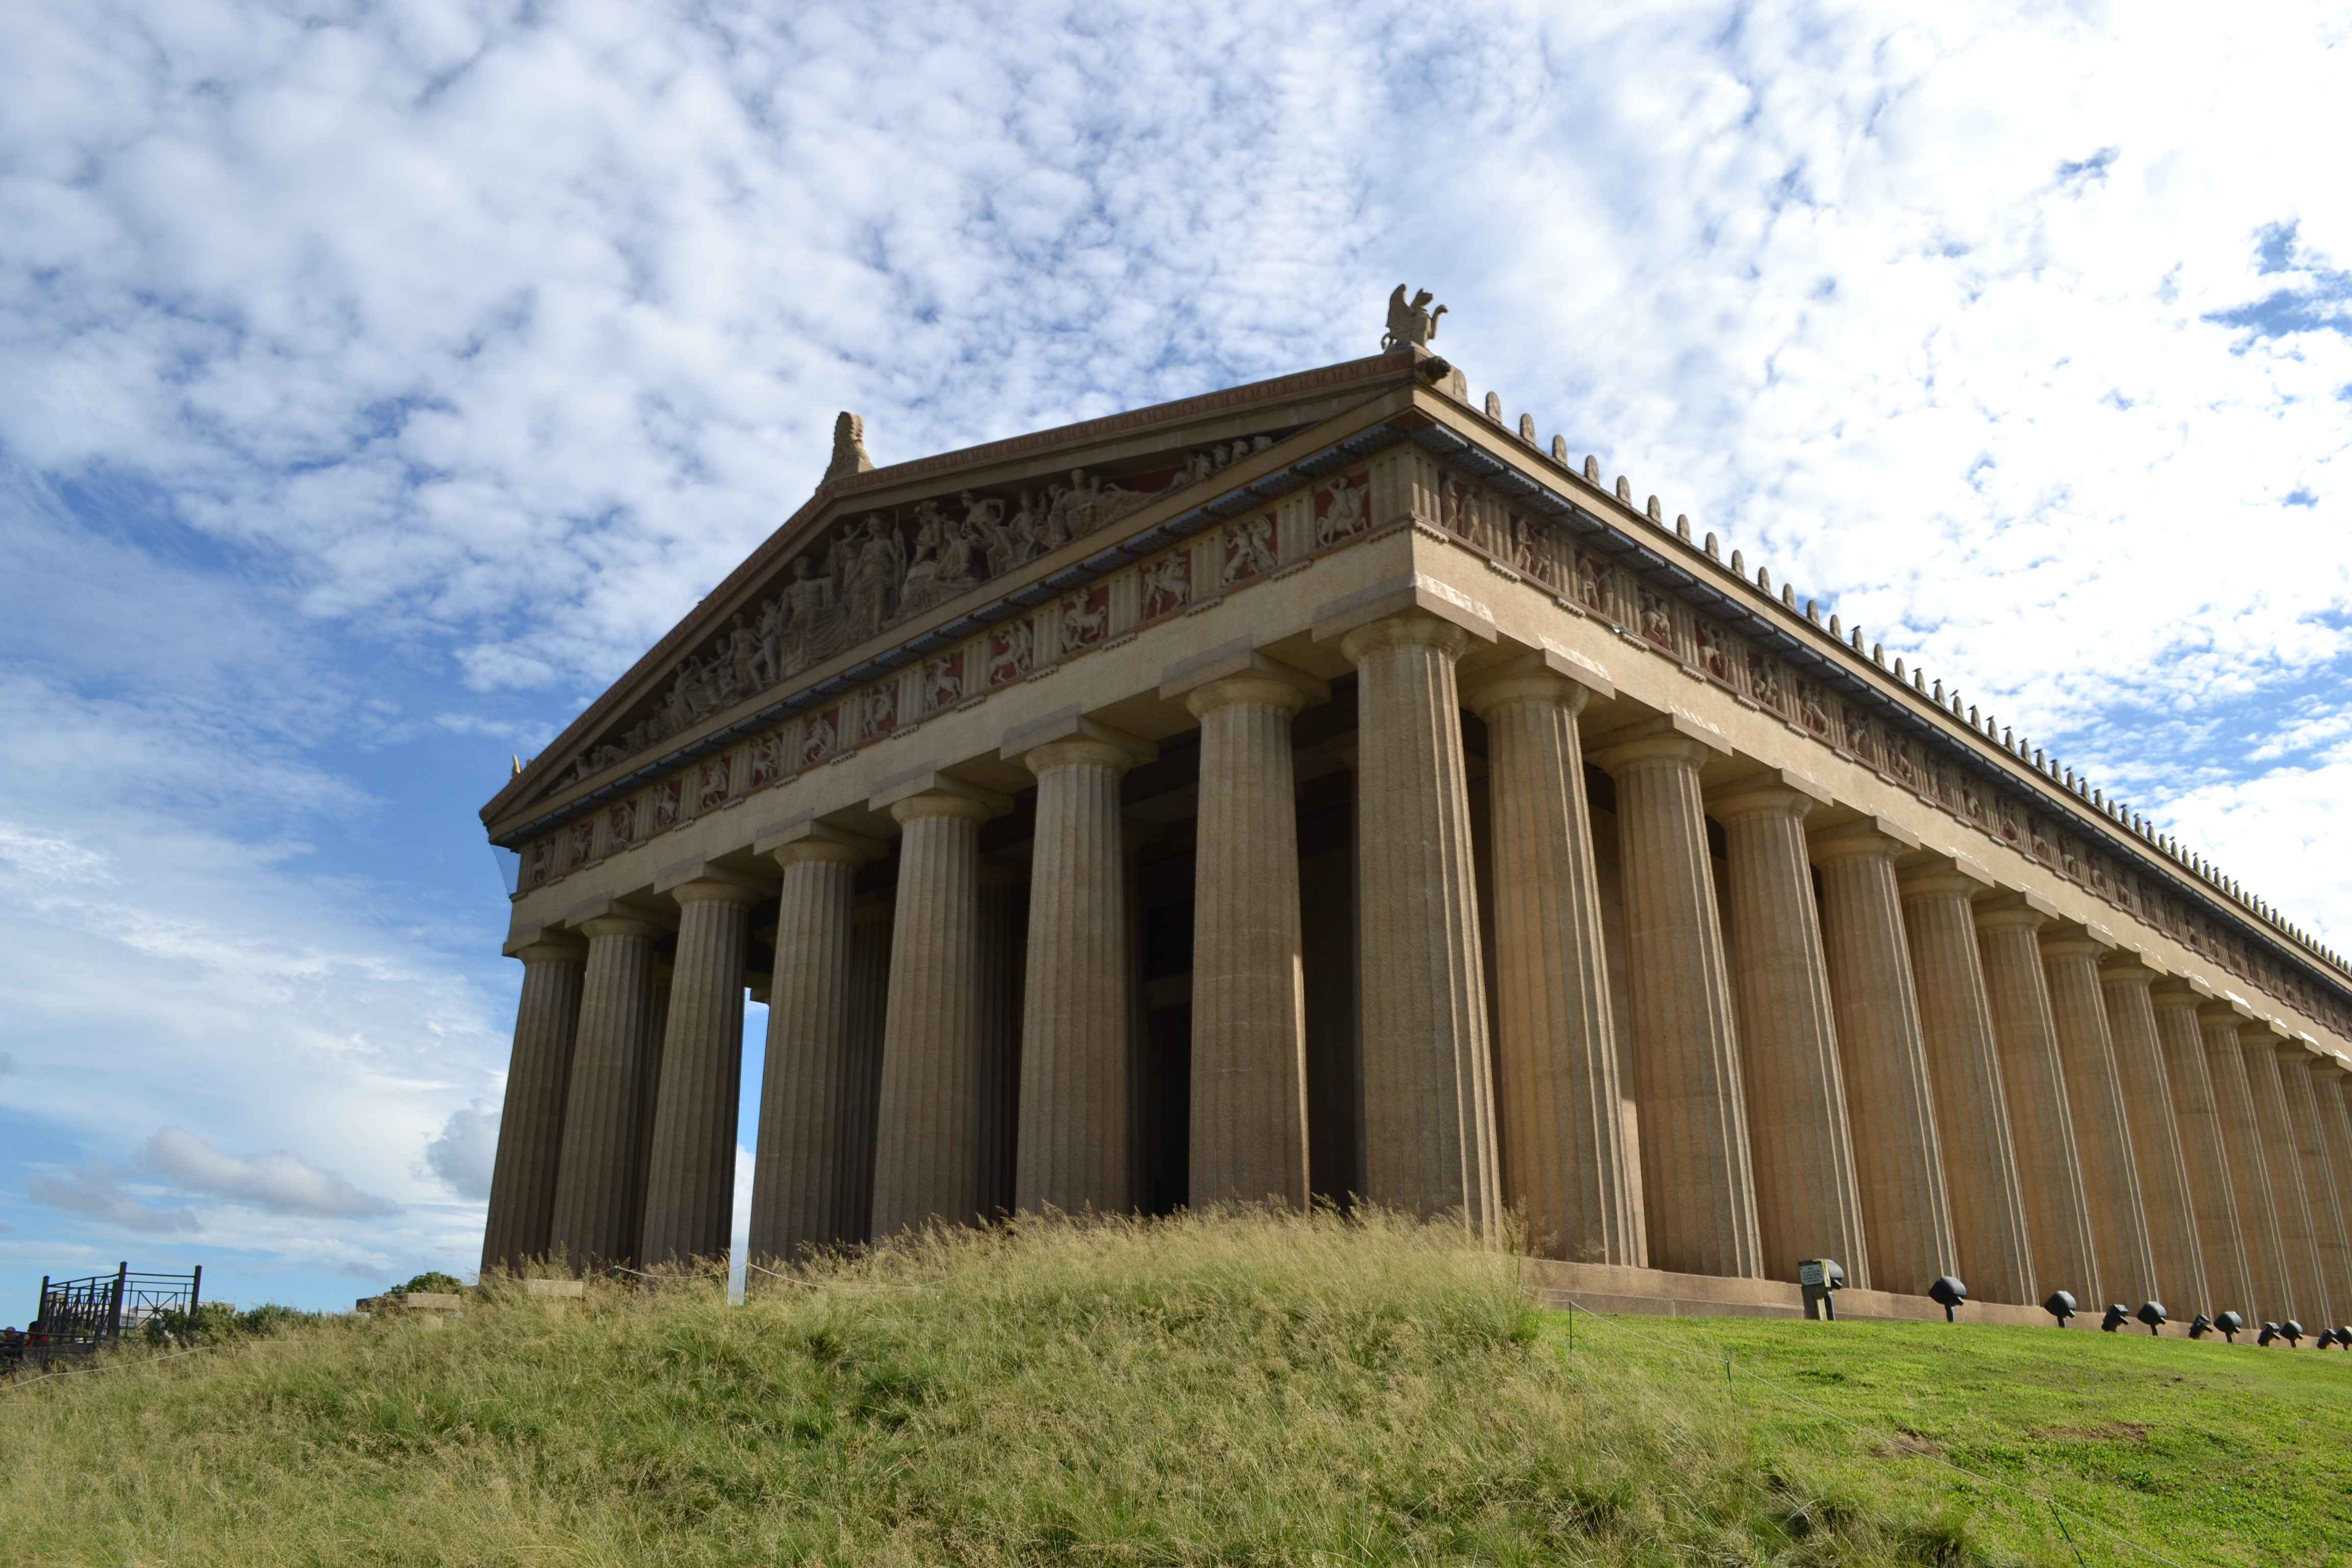 Nashville's Parthenon Honors Classical Ideals